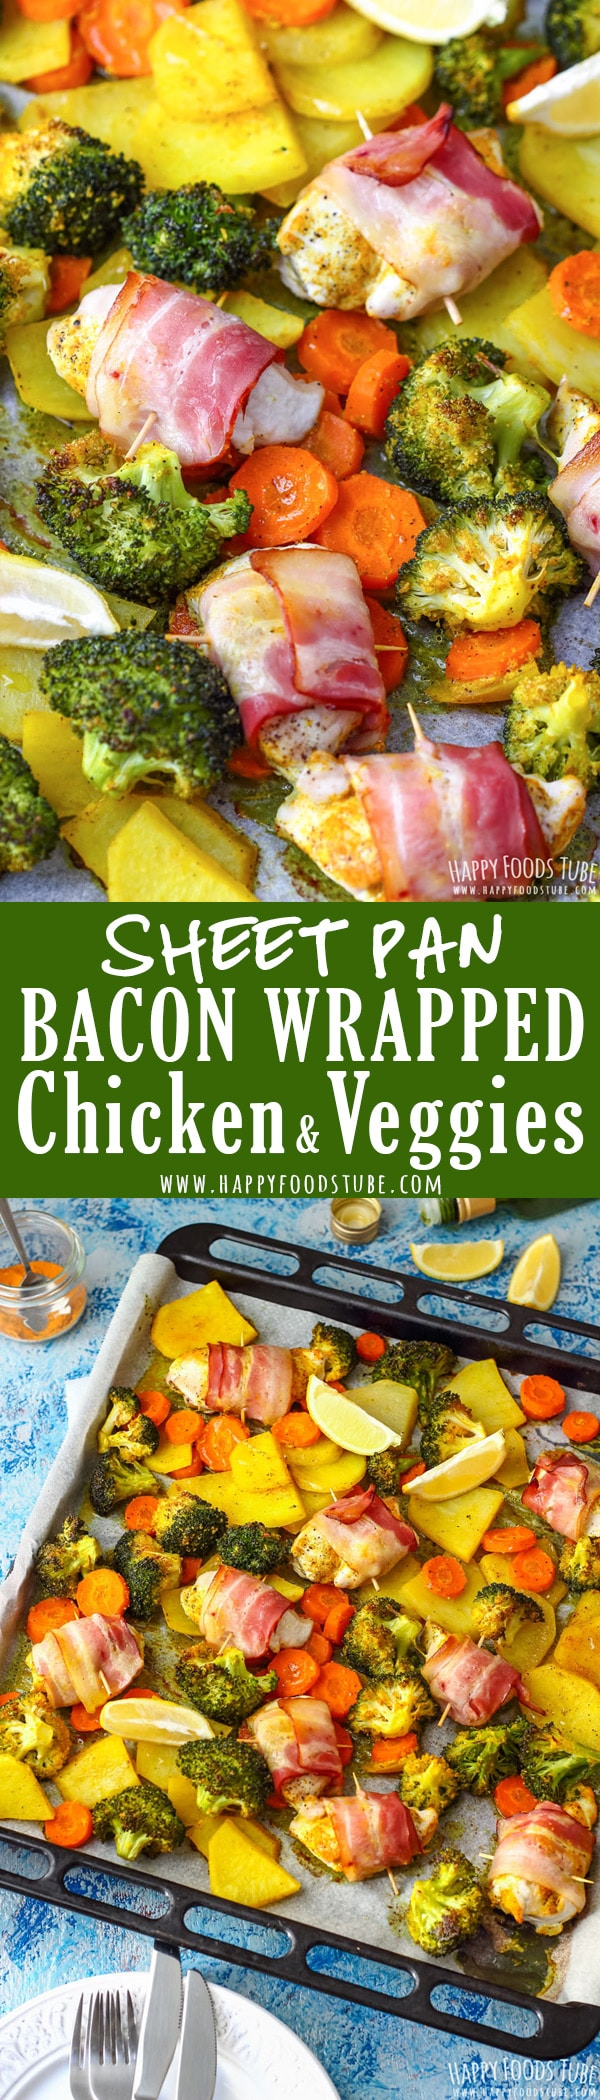 This sheet pan bacon wrapped chicken & veggies is a must-try dinner. Juicy chicken, roasted broccoli, carrots and potatoes are on your table in less than 40 minutes. #sheetpan #bacon #chicken #dinner #onepan #meal #lunch #easy #recipes #veggies #comfortfood